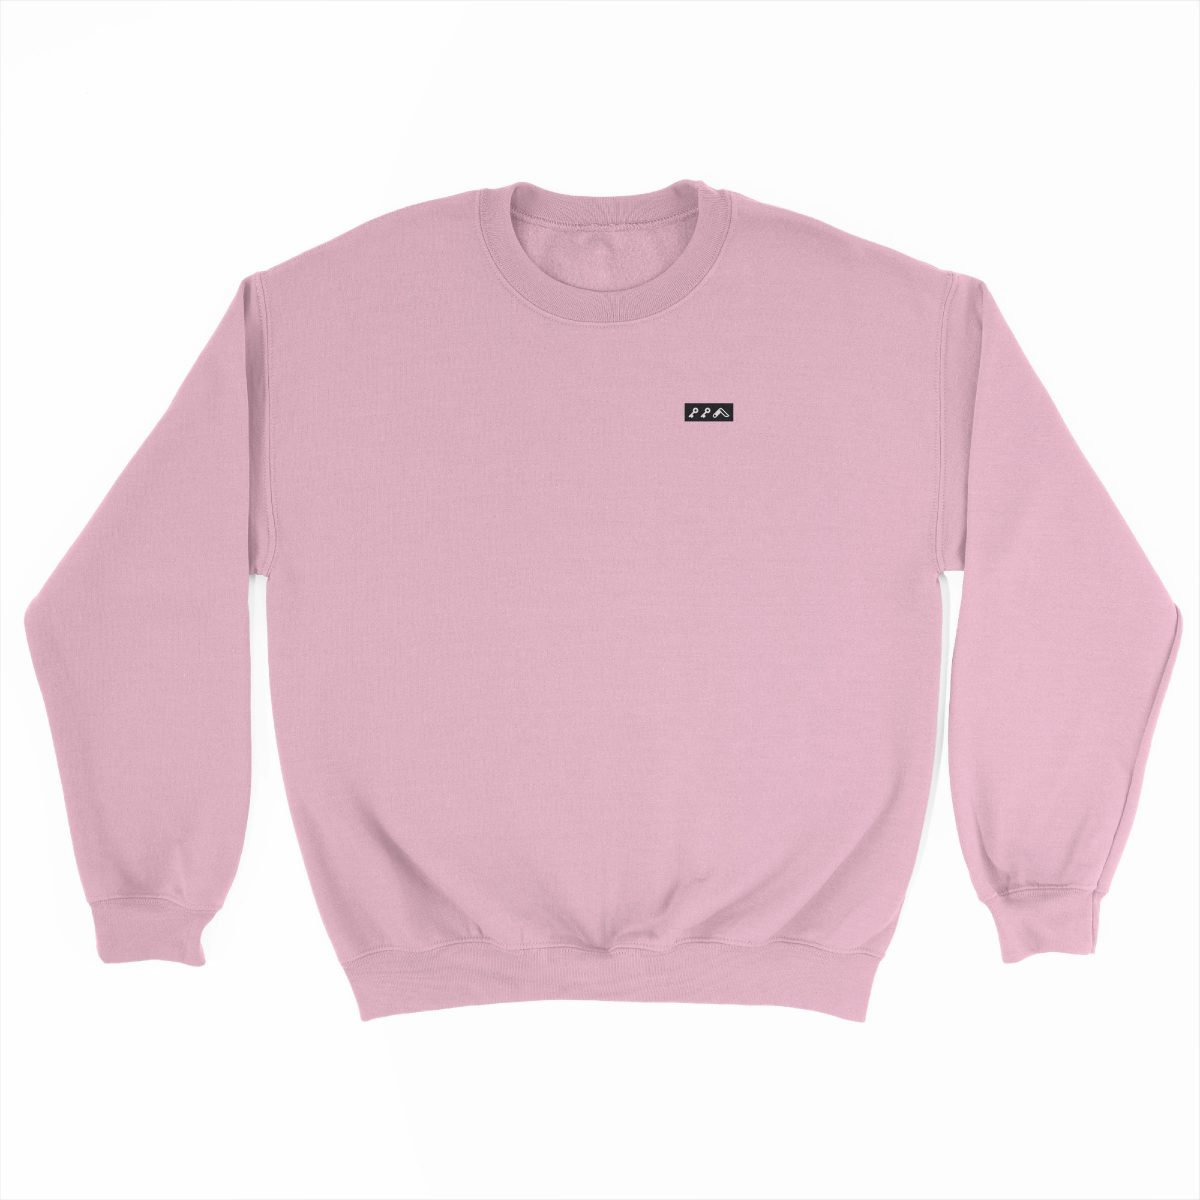 KIKICUTT black icon on a light pink really soft sweatshirt at kikicutt.com